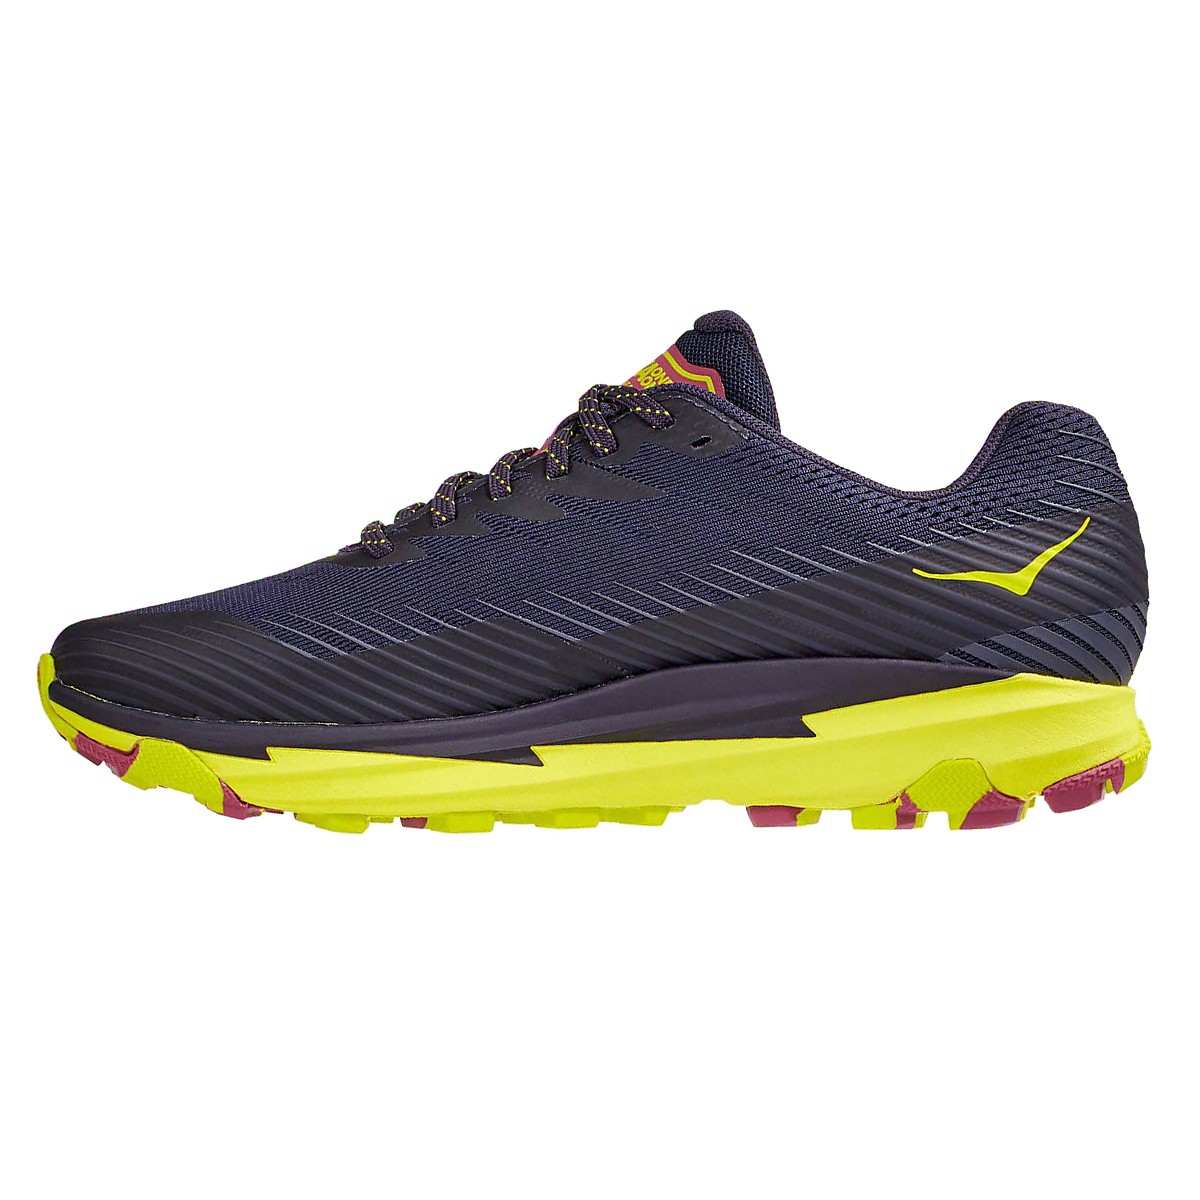 Women's Hoka One One Torrent 2 Trail Running Shoe - Color: Deep Well/Eve - Size: 5 - Width: Regular, Deep Well/Eve, large, image 6